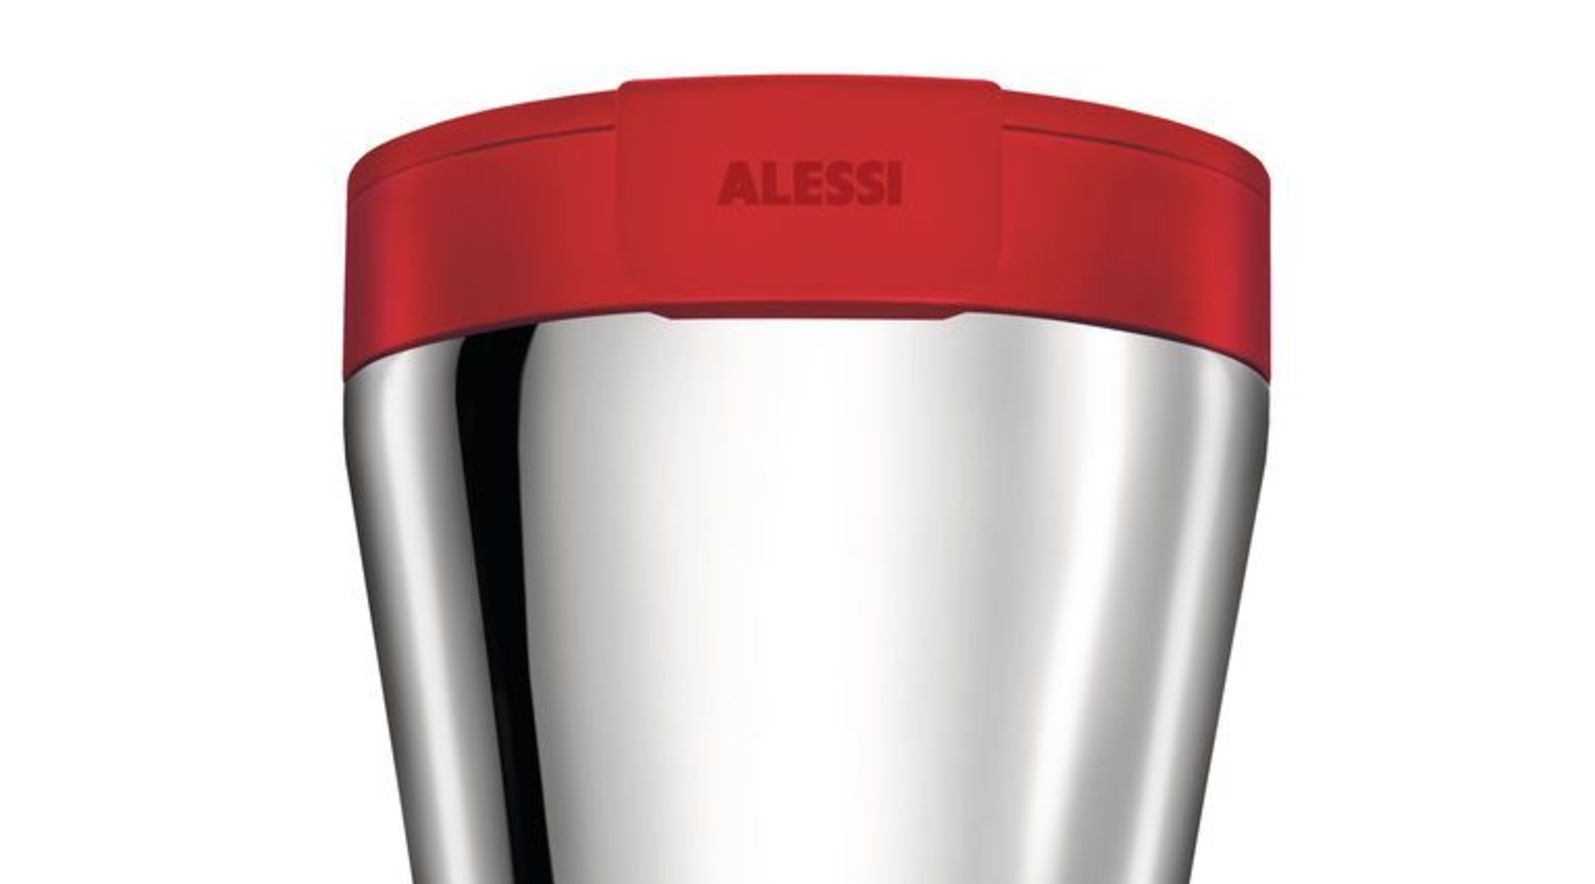 Alessi Caffa Rood Thermos Beker